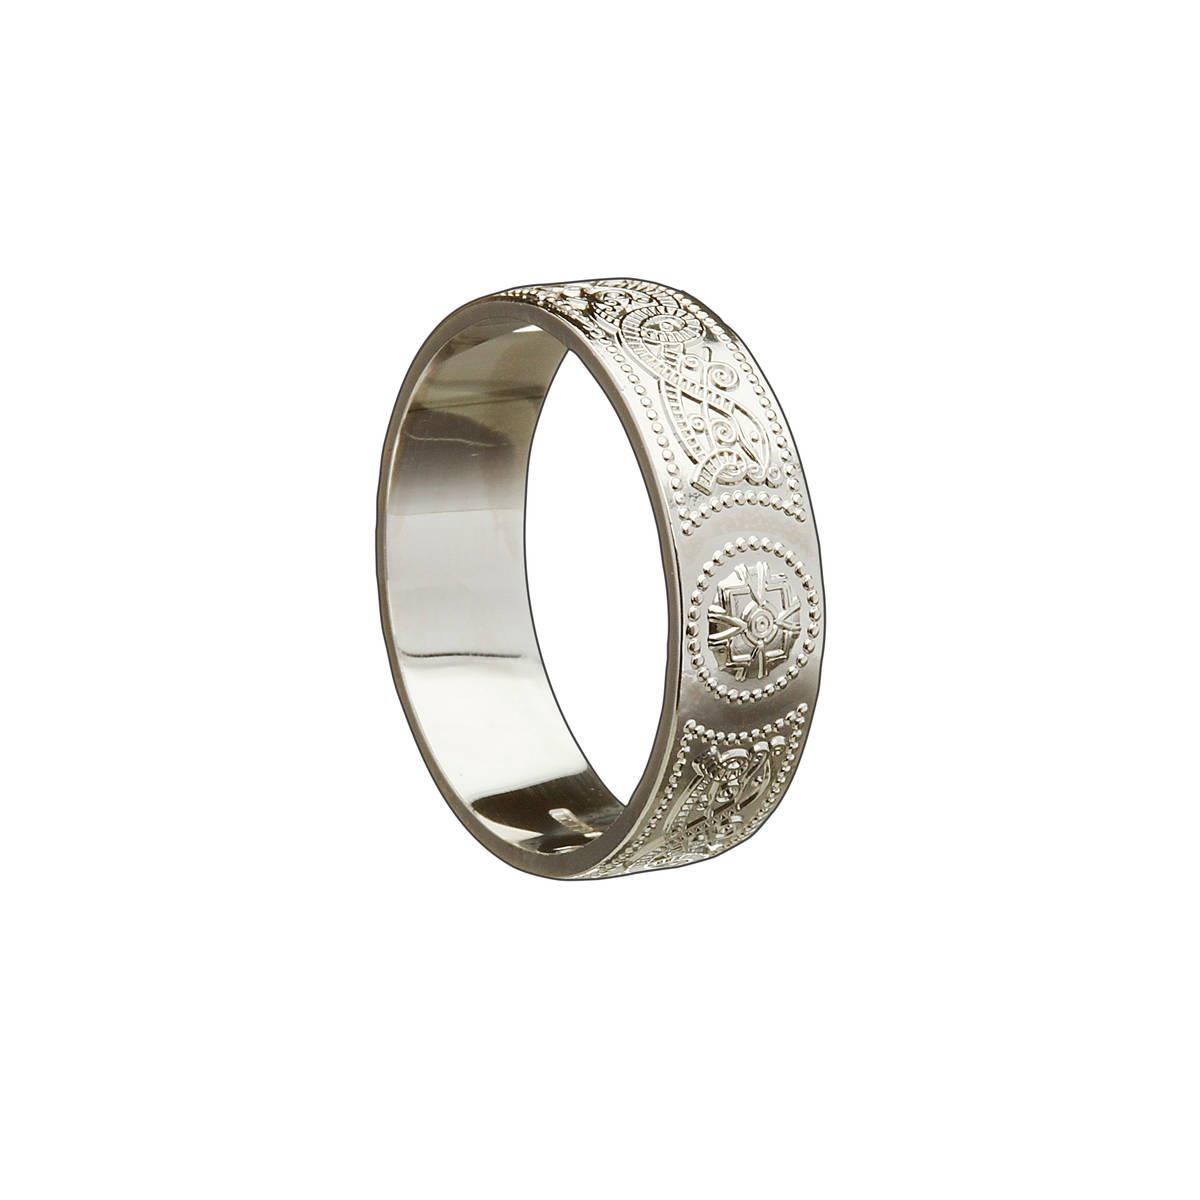 14 carat light white gold man'sArda chalice inspired 6.8mm approx.wide ring.A very practical everyday Celtic ring with great detail.